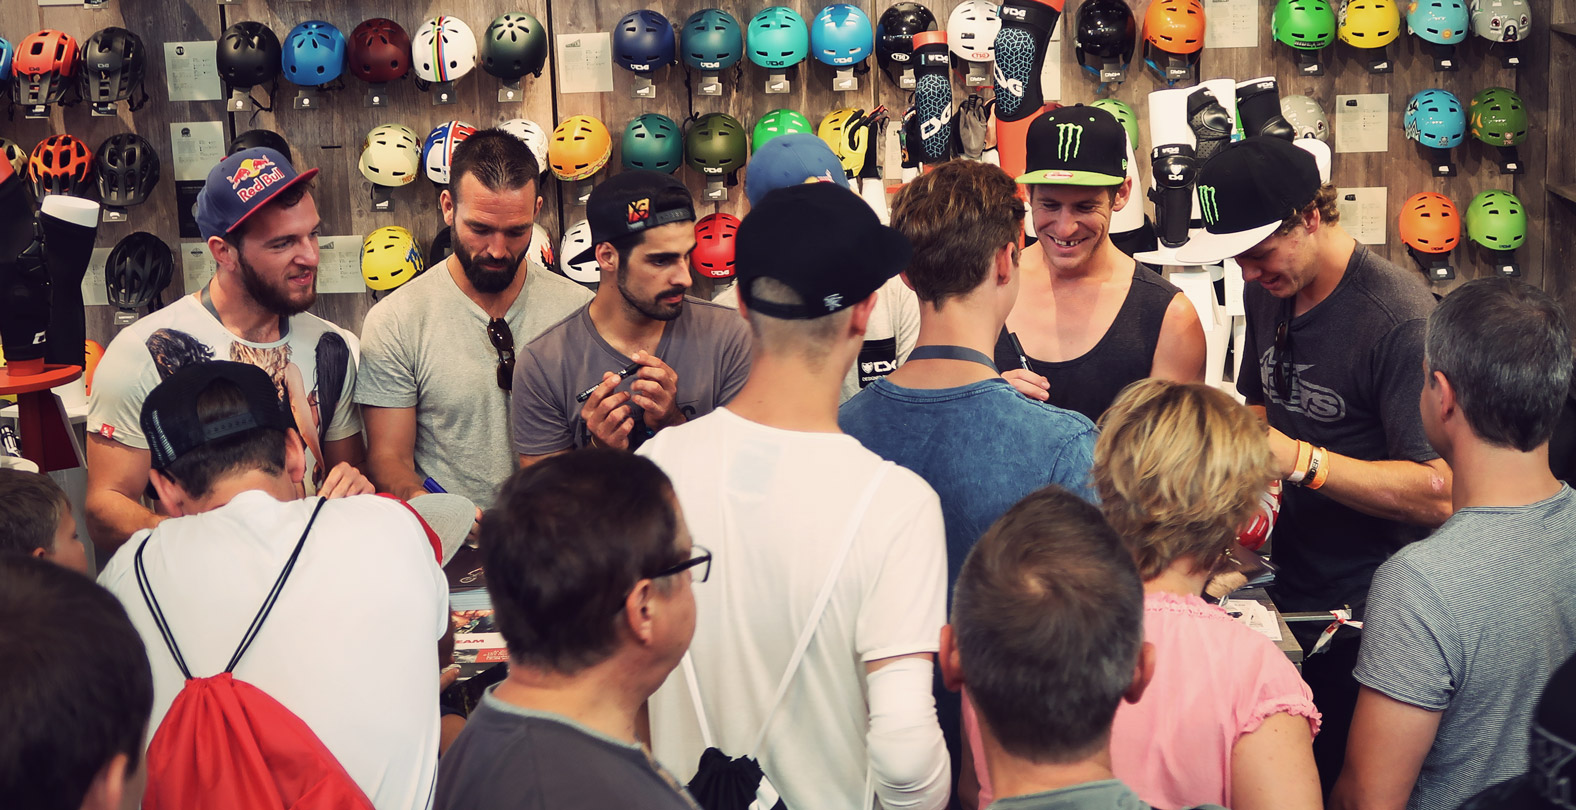 TSG Bike Team Meet & Greet Signing Session at Eurobike 2019